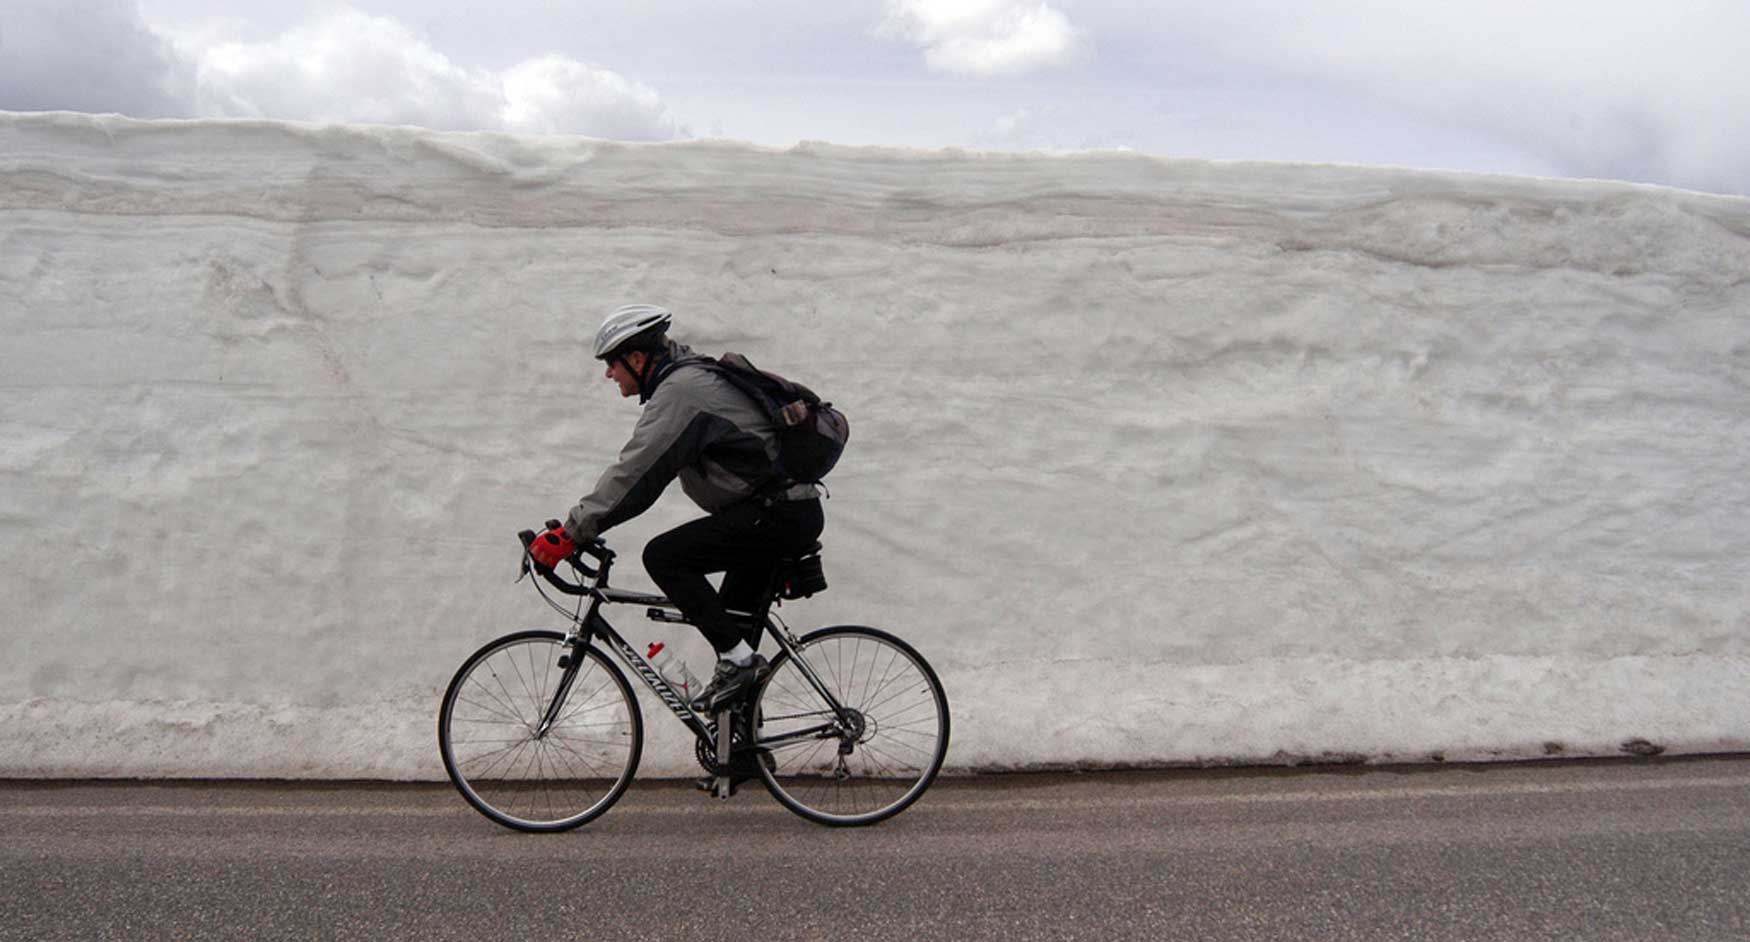 A bicyclist rides past freshly plowed snow along the road between Norris and Canyon Village. (Ruffin Prevost/Yellowstone Gate file photo - click to enlarge)